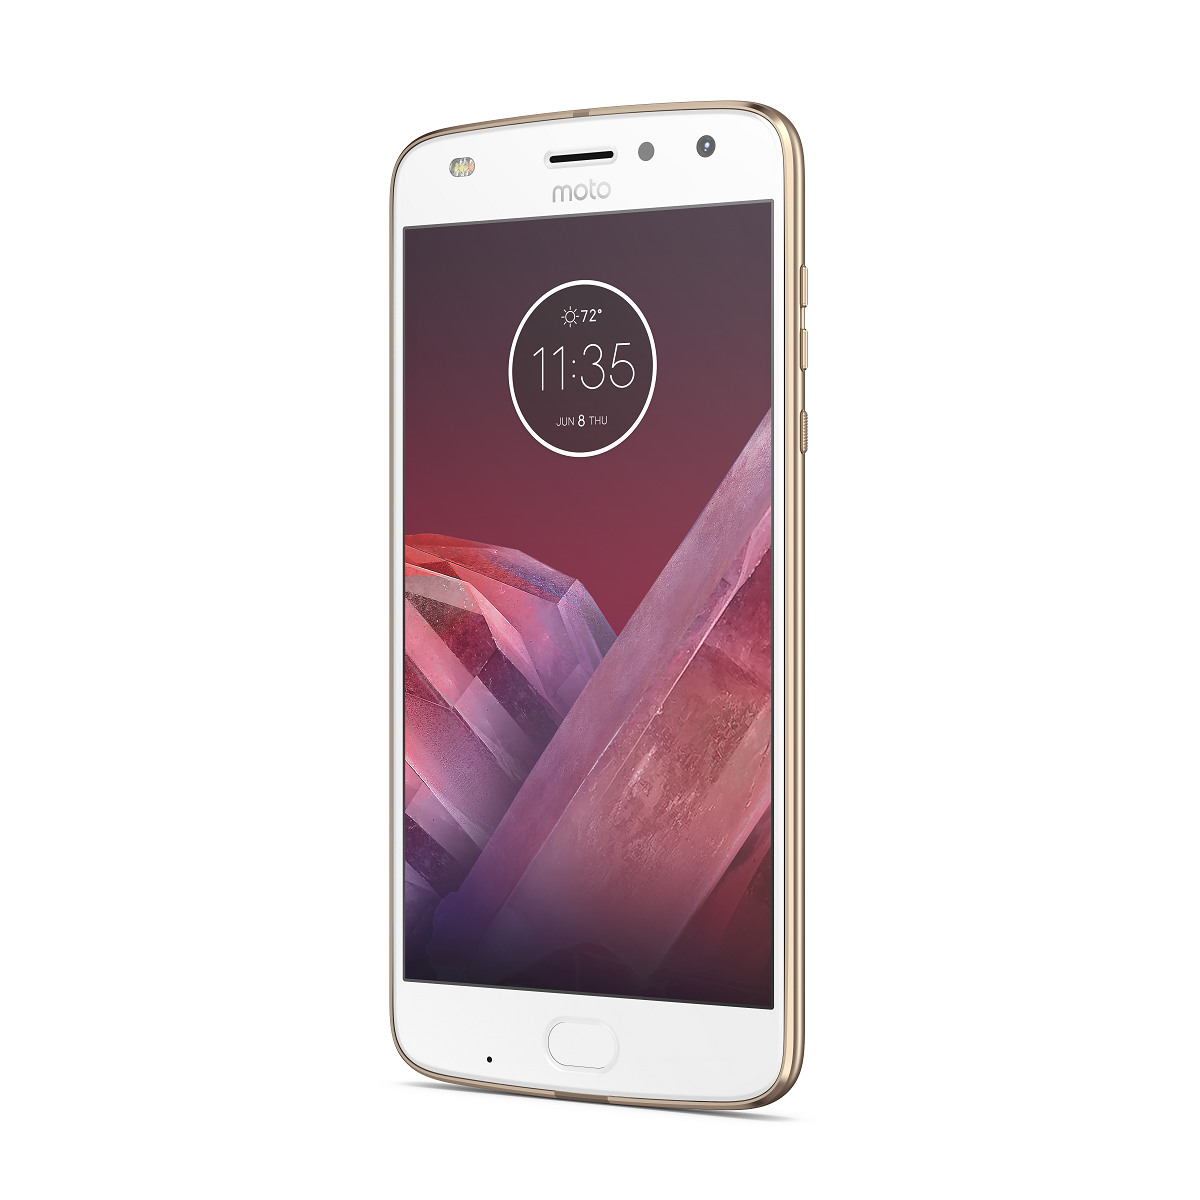 "Motorola Moto Z2 Play Dual SIM/5,5"" AMOLED/1920x1080/Octa-Core/2,2GHz/4GB/64GB/12Mpx/LTE/Android 7.1/Fine Gold"